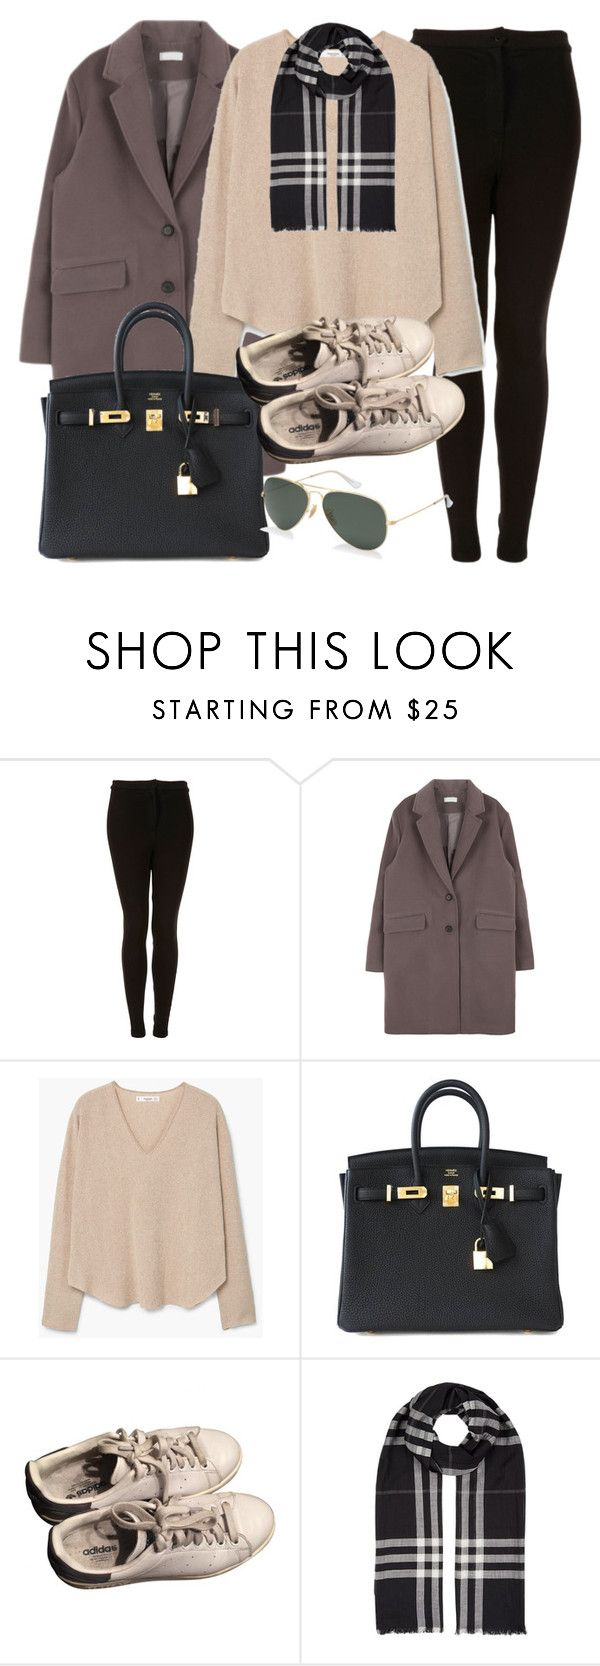 """Sin título #11918"" by vany-alvarado ❤ liked on Polyvore featuring Topshop, MANGO, Hermès, adidas, Burberry and Ray-Ban"